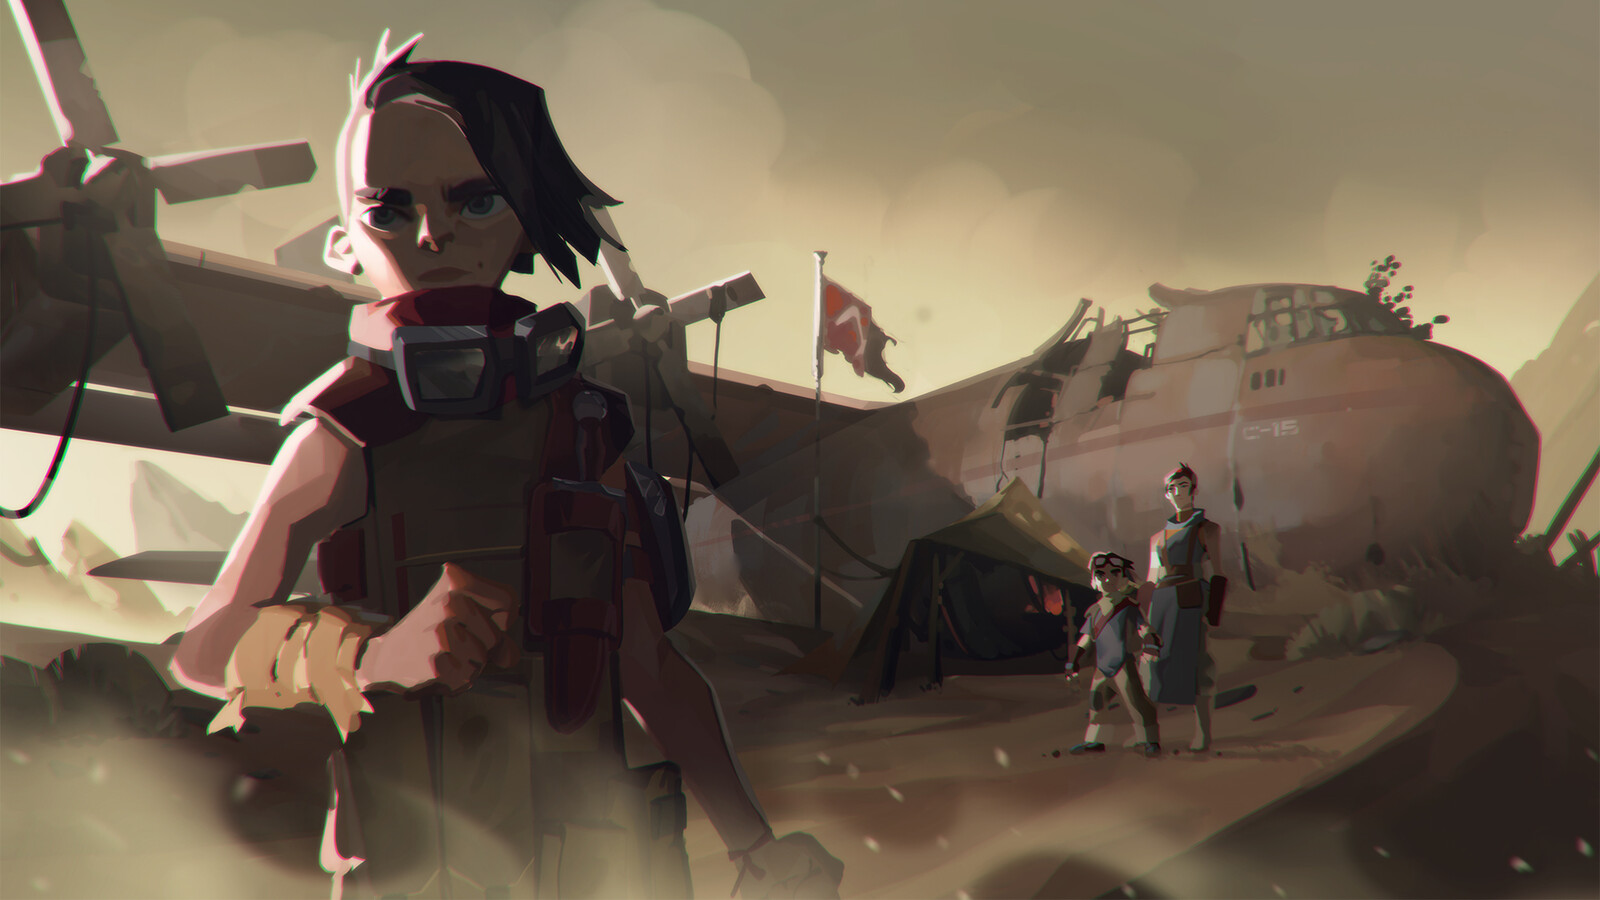 Final concept I art directed and painted together with Pedro Kruger